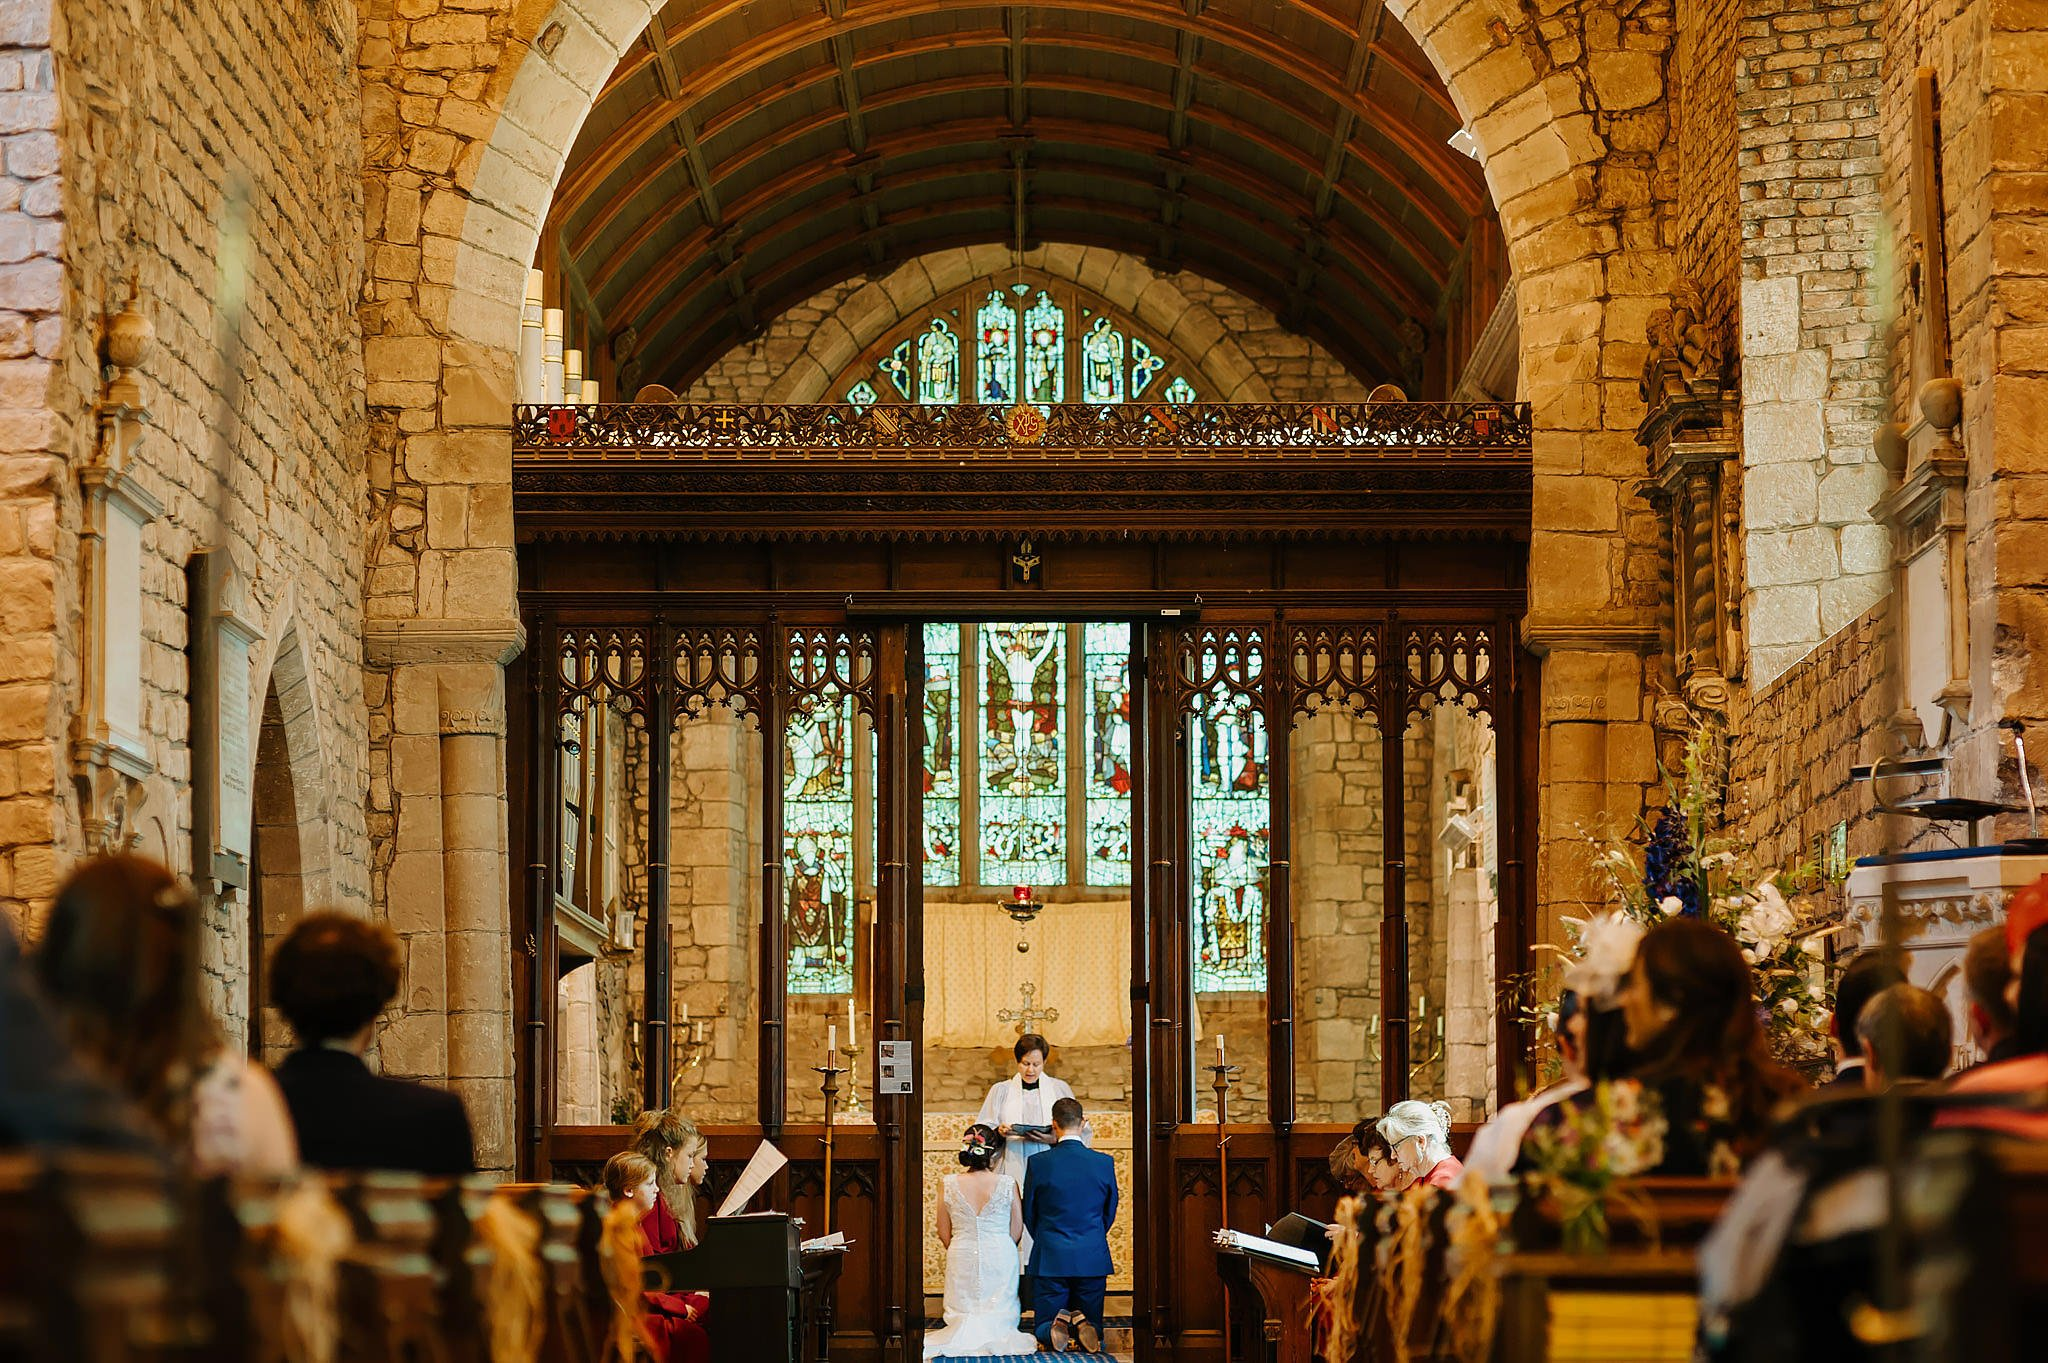 Wedding photography at Hellens Manor in Herefordshire, West Midlands | Shelley + Ian 30